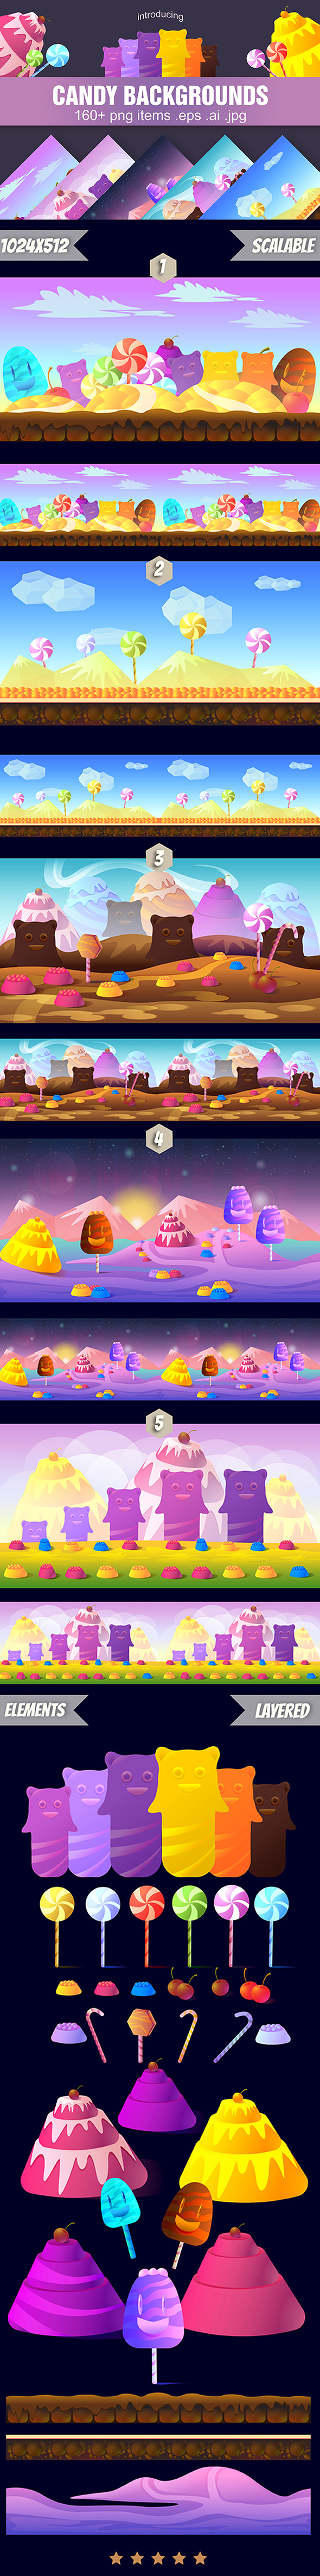 Candy Backgrounds example image 2